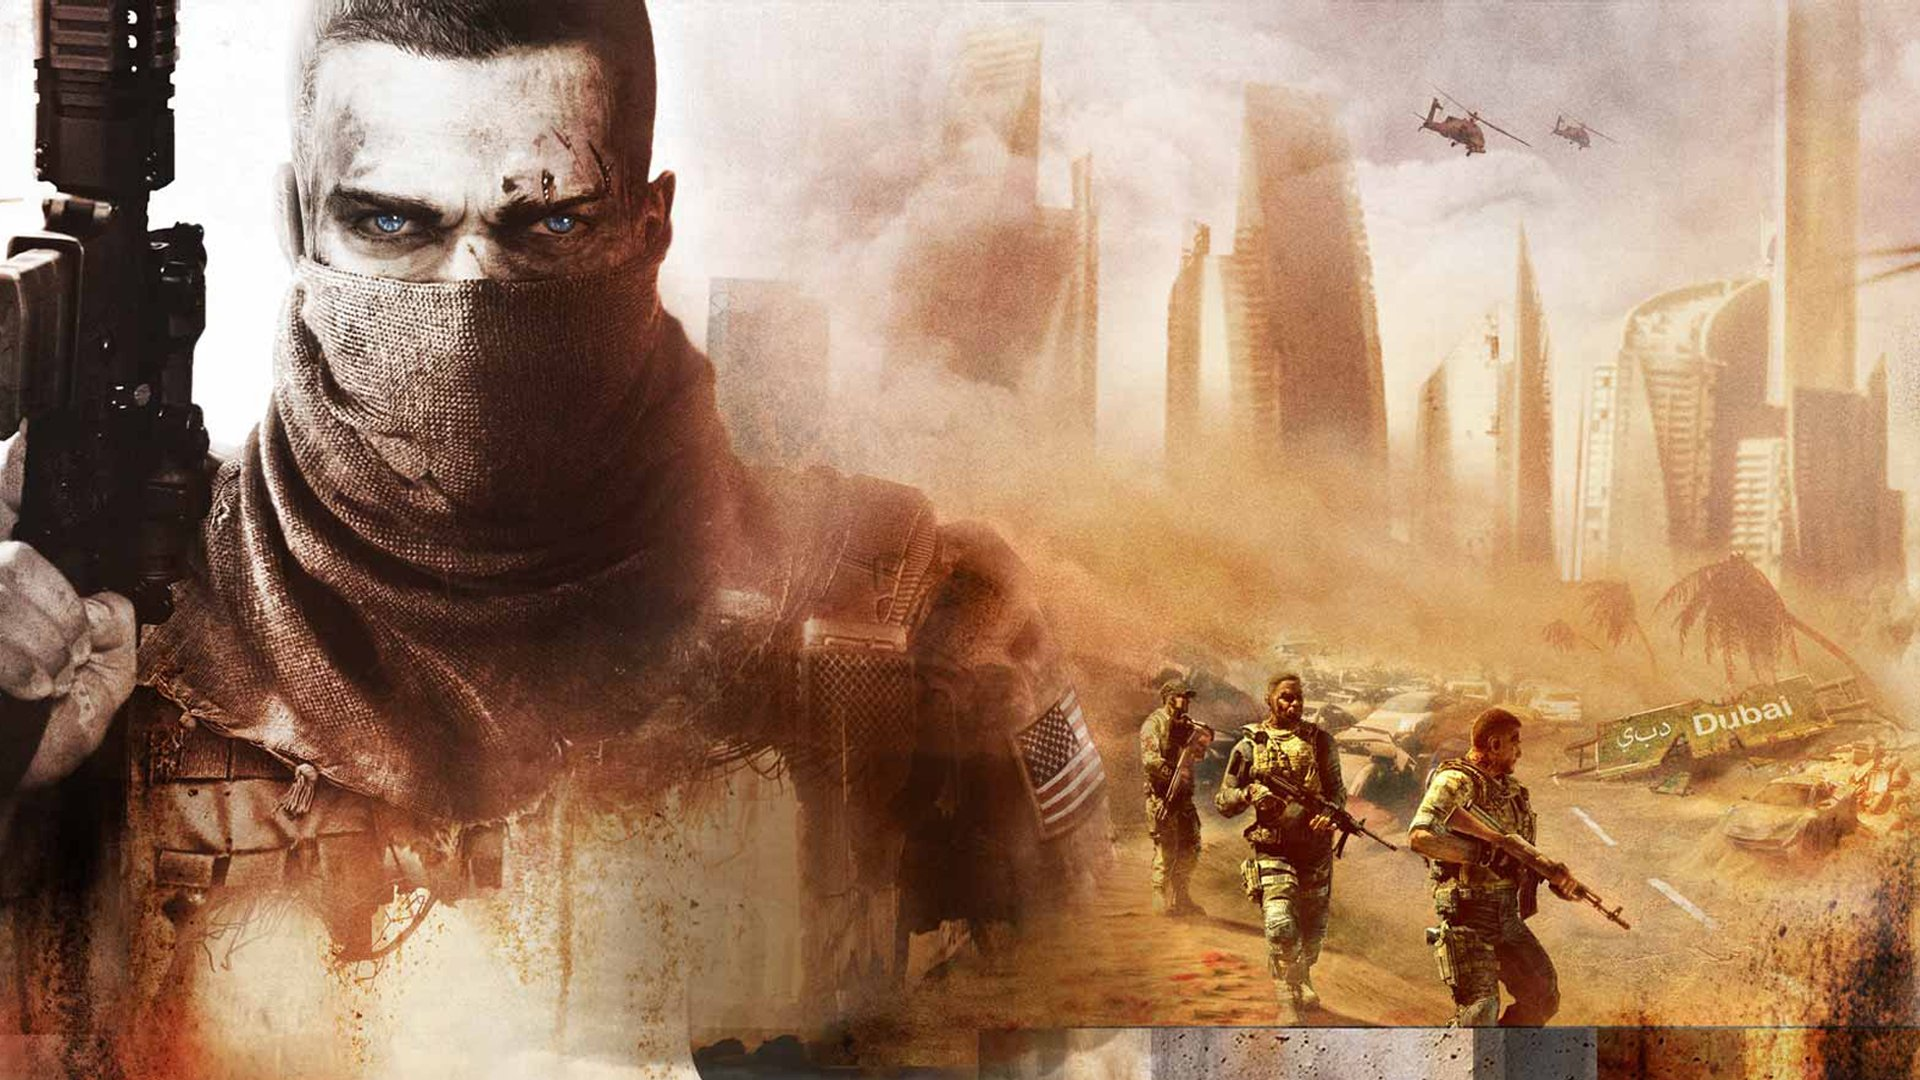 spec ops the line Wallpaper HD Wallpaper Background Image 1920x1080